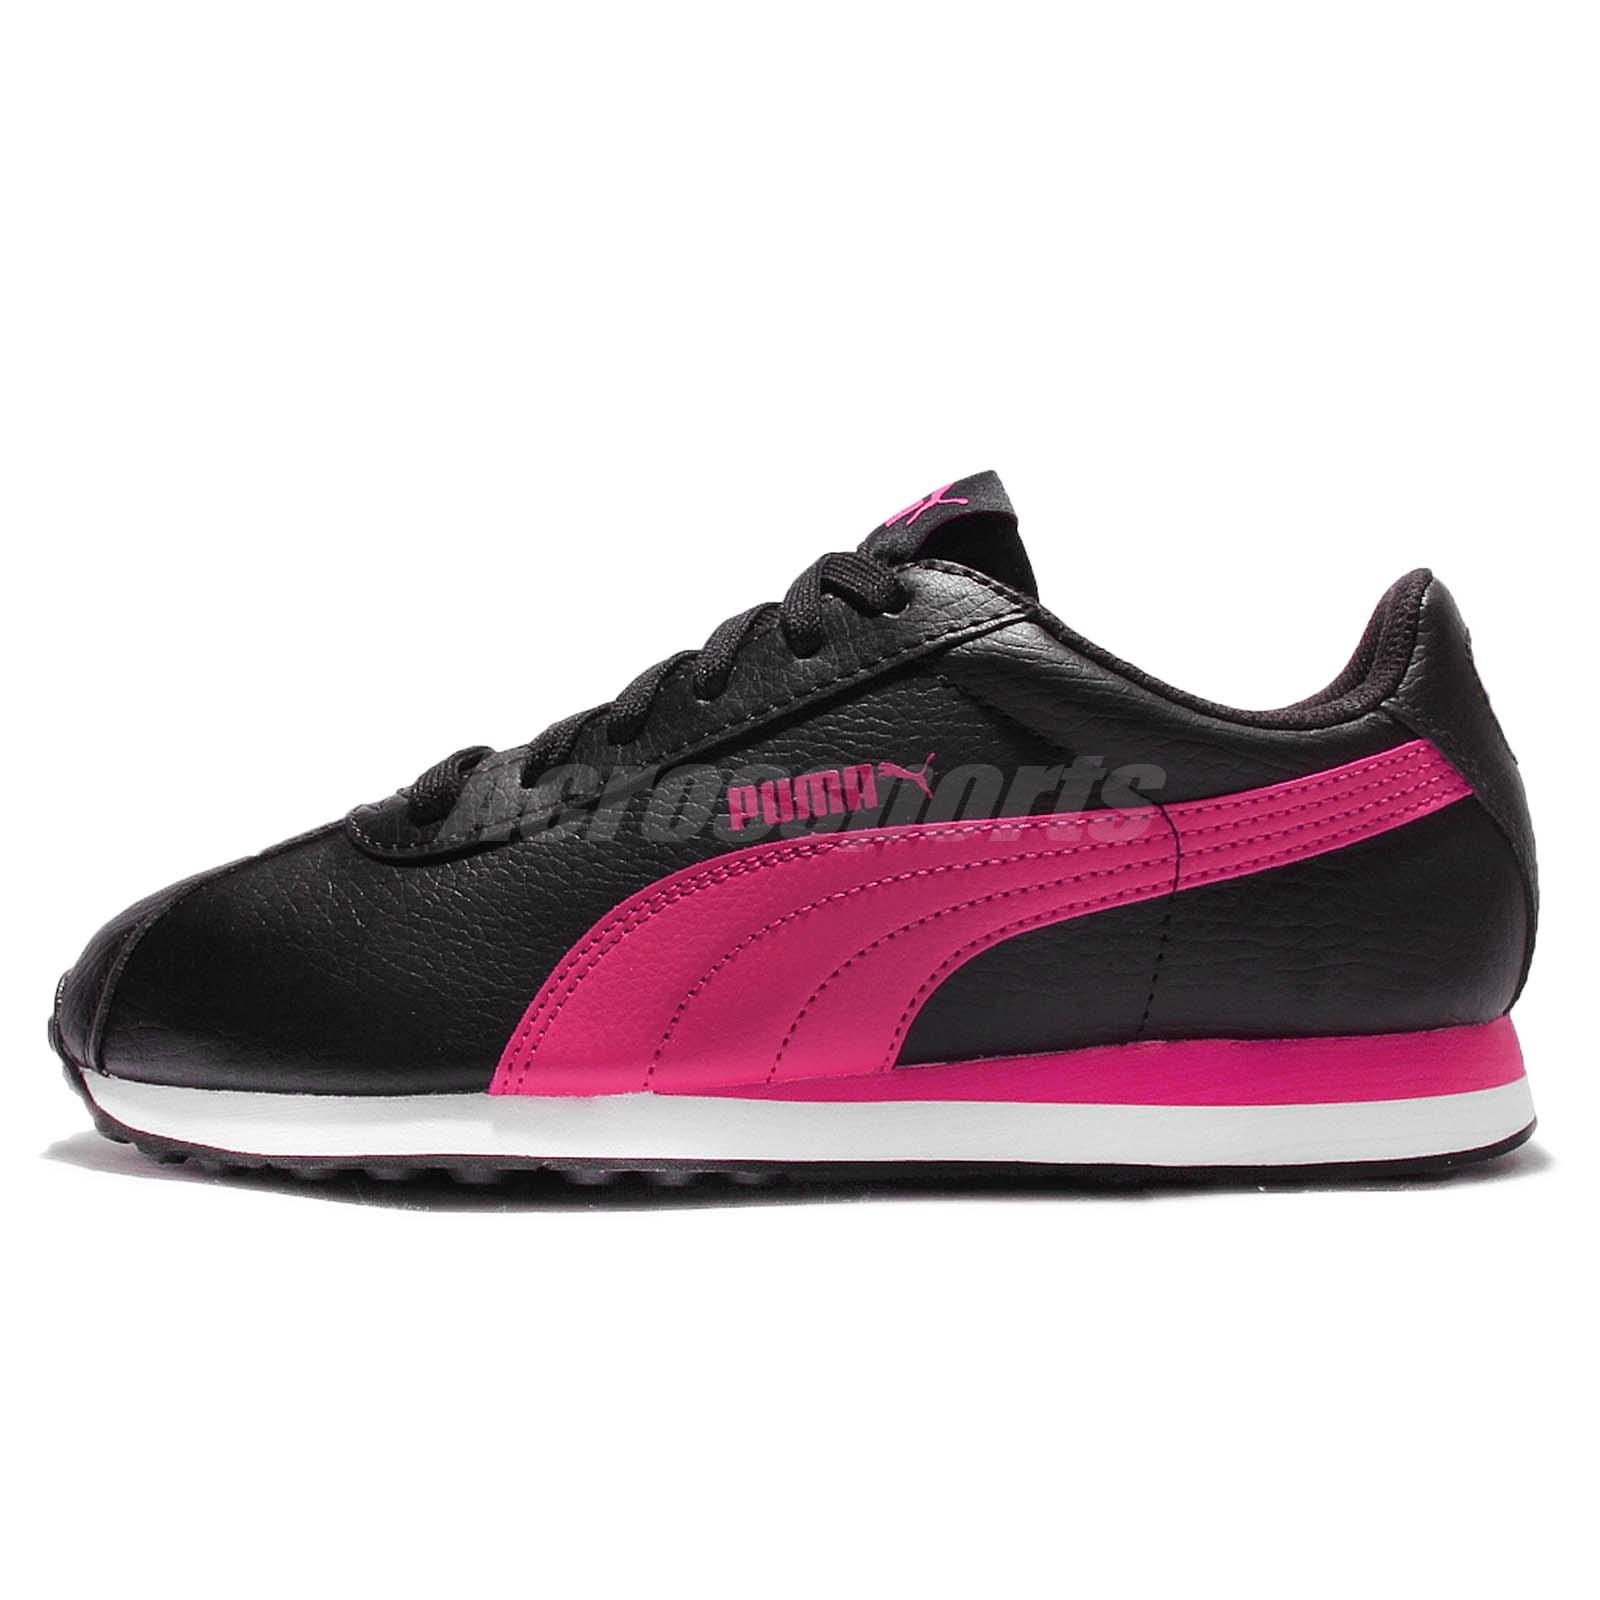 Free shipping BOTH ways on pink and black nike shoes, from our vast selection of styles. Fast delivery, and 24/7/ real-person service with a smile. Click or call